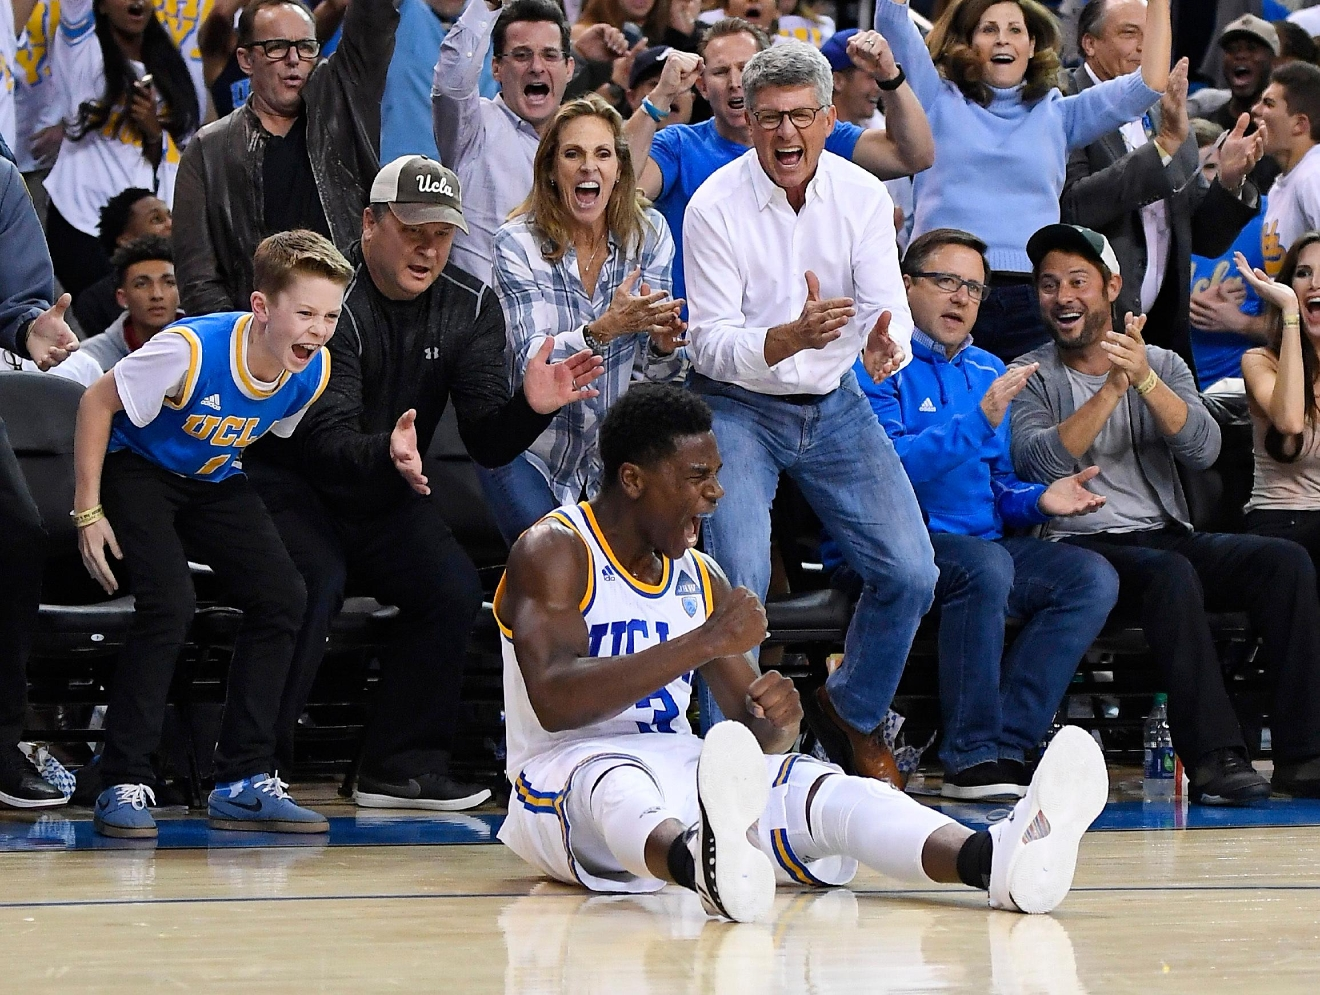 UCLA guard Aaron Holiday celebrates after scoring during the second half of the team's NCAA college basketball game against Oregon, Thursday, Feb. 9, 2017, in Los Angeles. UCLA won 82-p79. (AP Photo/Mark J. Terrill)